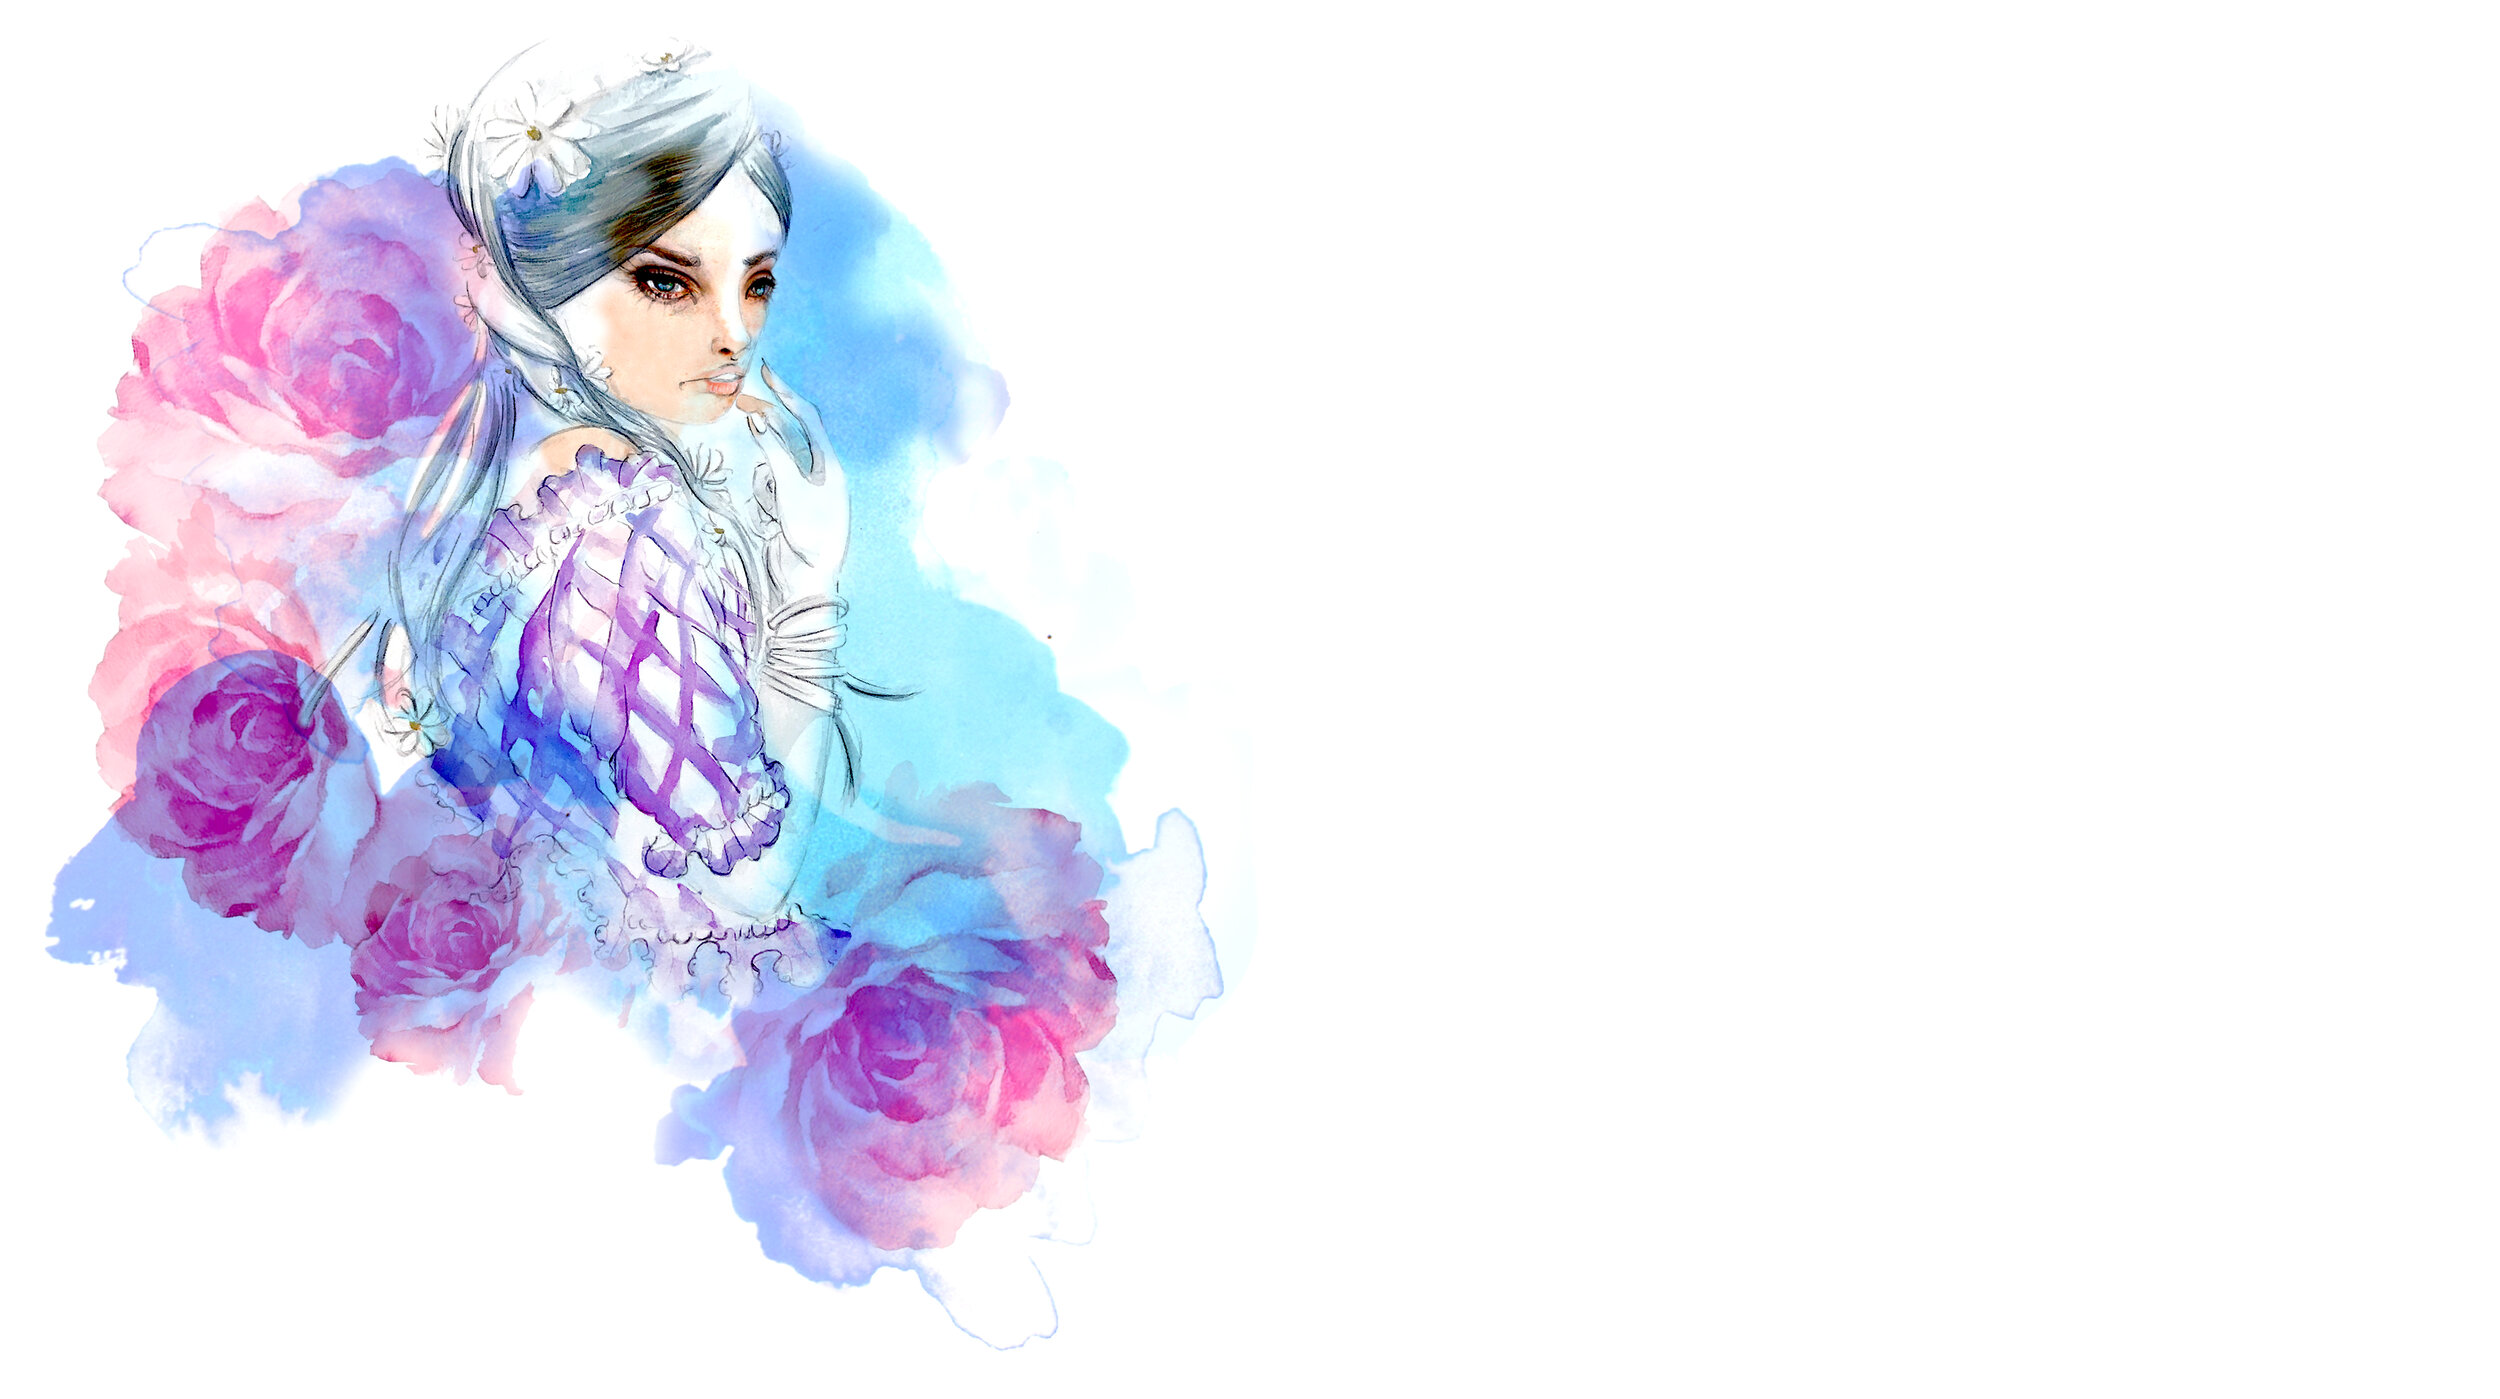 Watercolor Fashion Illustration Banner - Yes, you can put your brand's name in the empty space on the right.